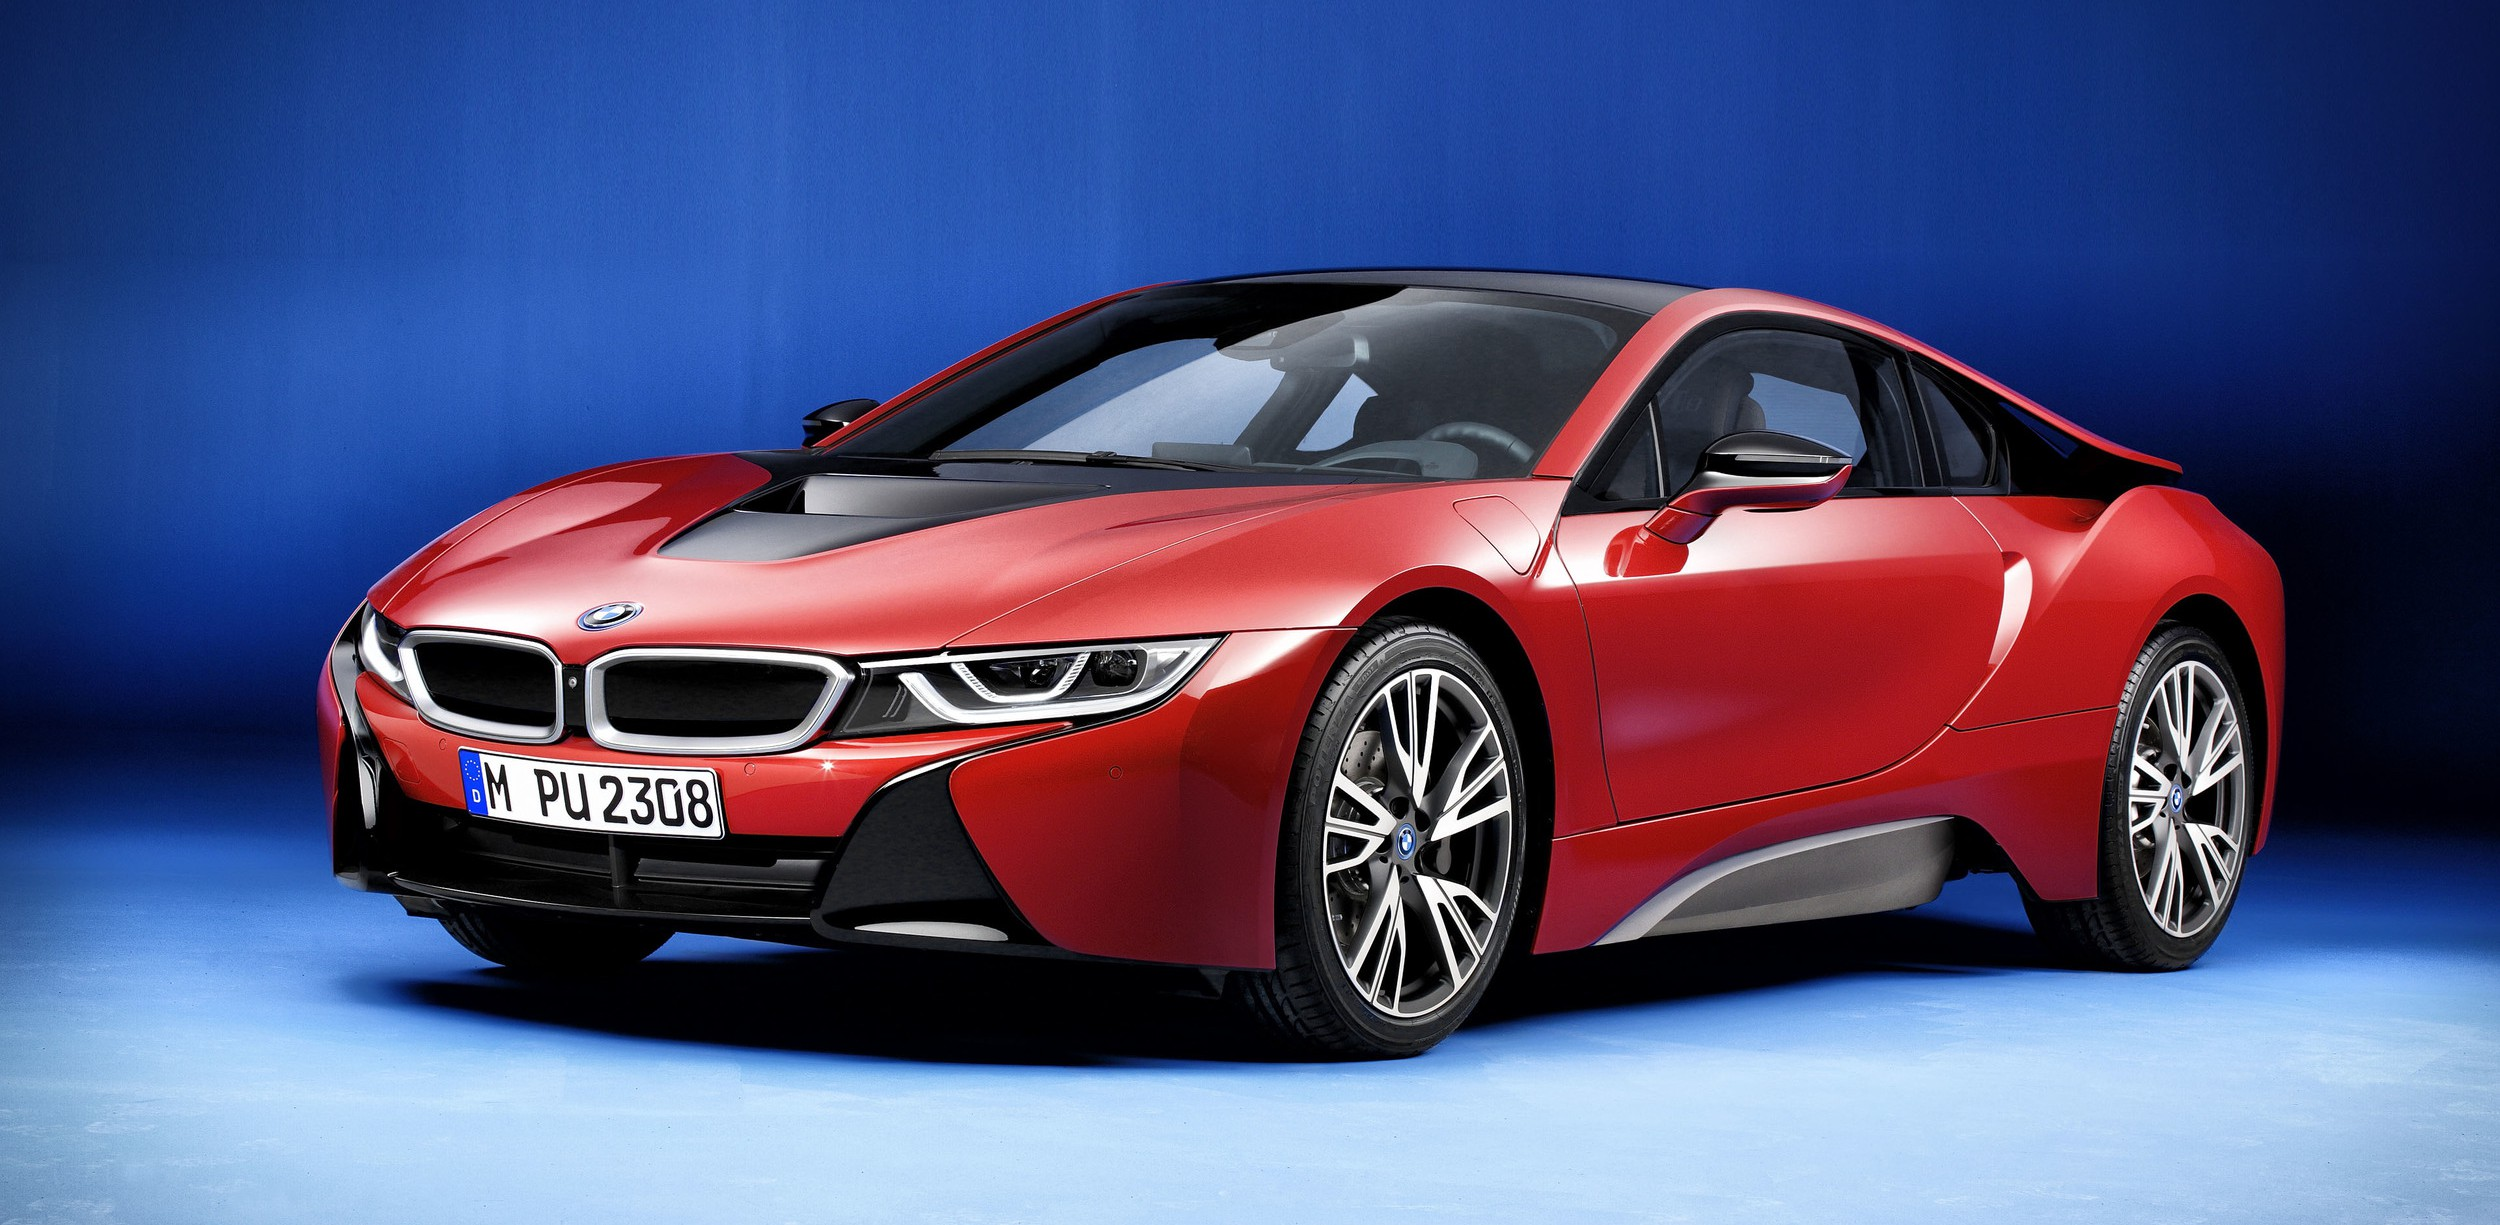 bmw-i8-protonic-red-edition-003-1